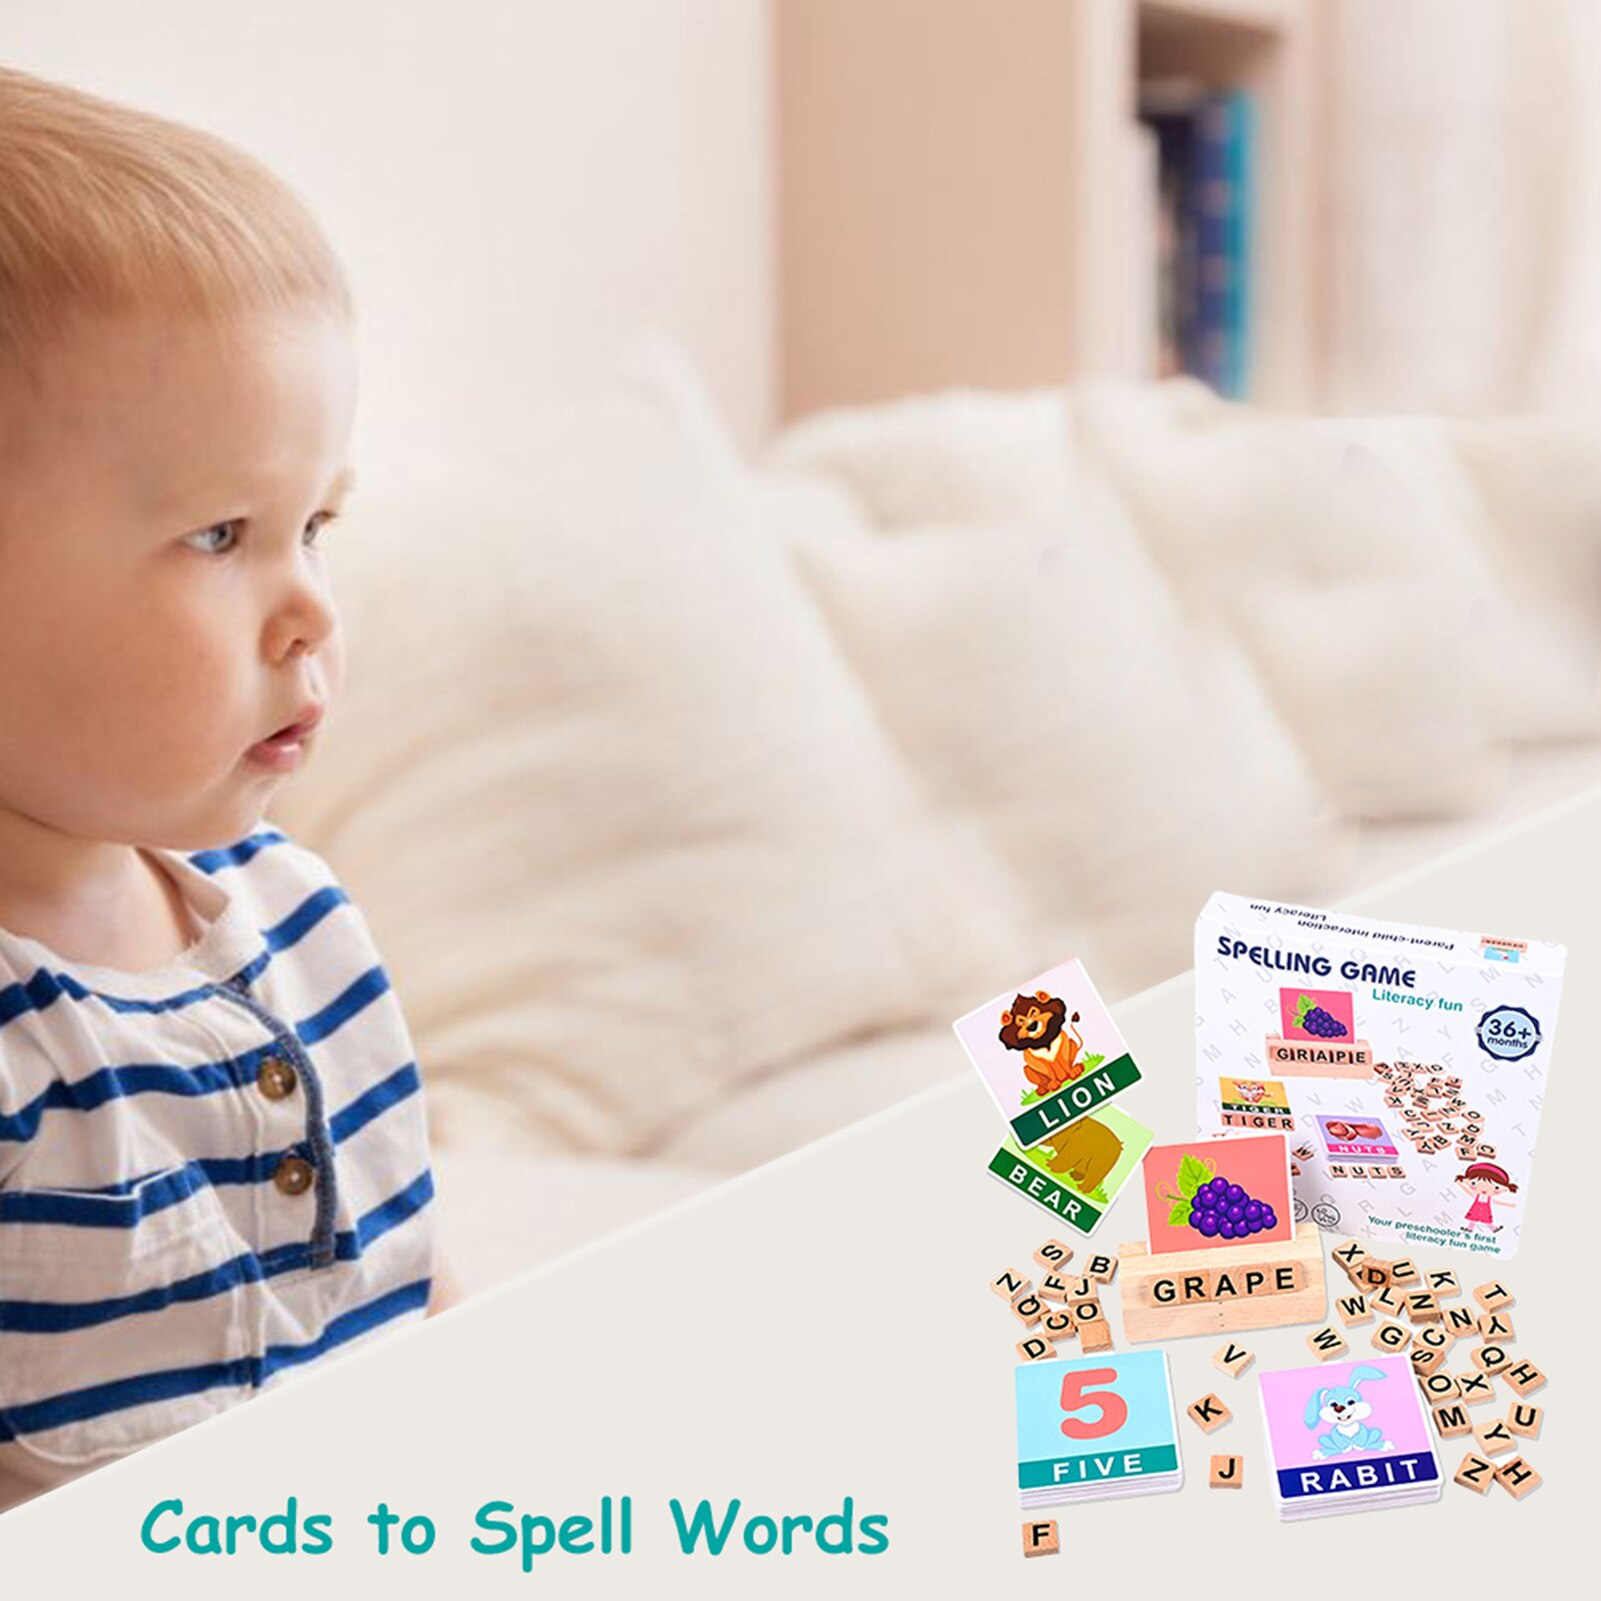 2021 New Wood Spelling Words Game Kids Early Educational Toys For Children Learning Wooden Toys Montessori Education Puzzle Toys topological game tower of hanoi iq intelligence developer 3d puzzle natural wood math game montessori montessori toys children s toys educational toys children toys montessori toys for children fidget toys